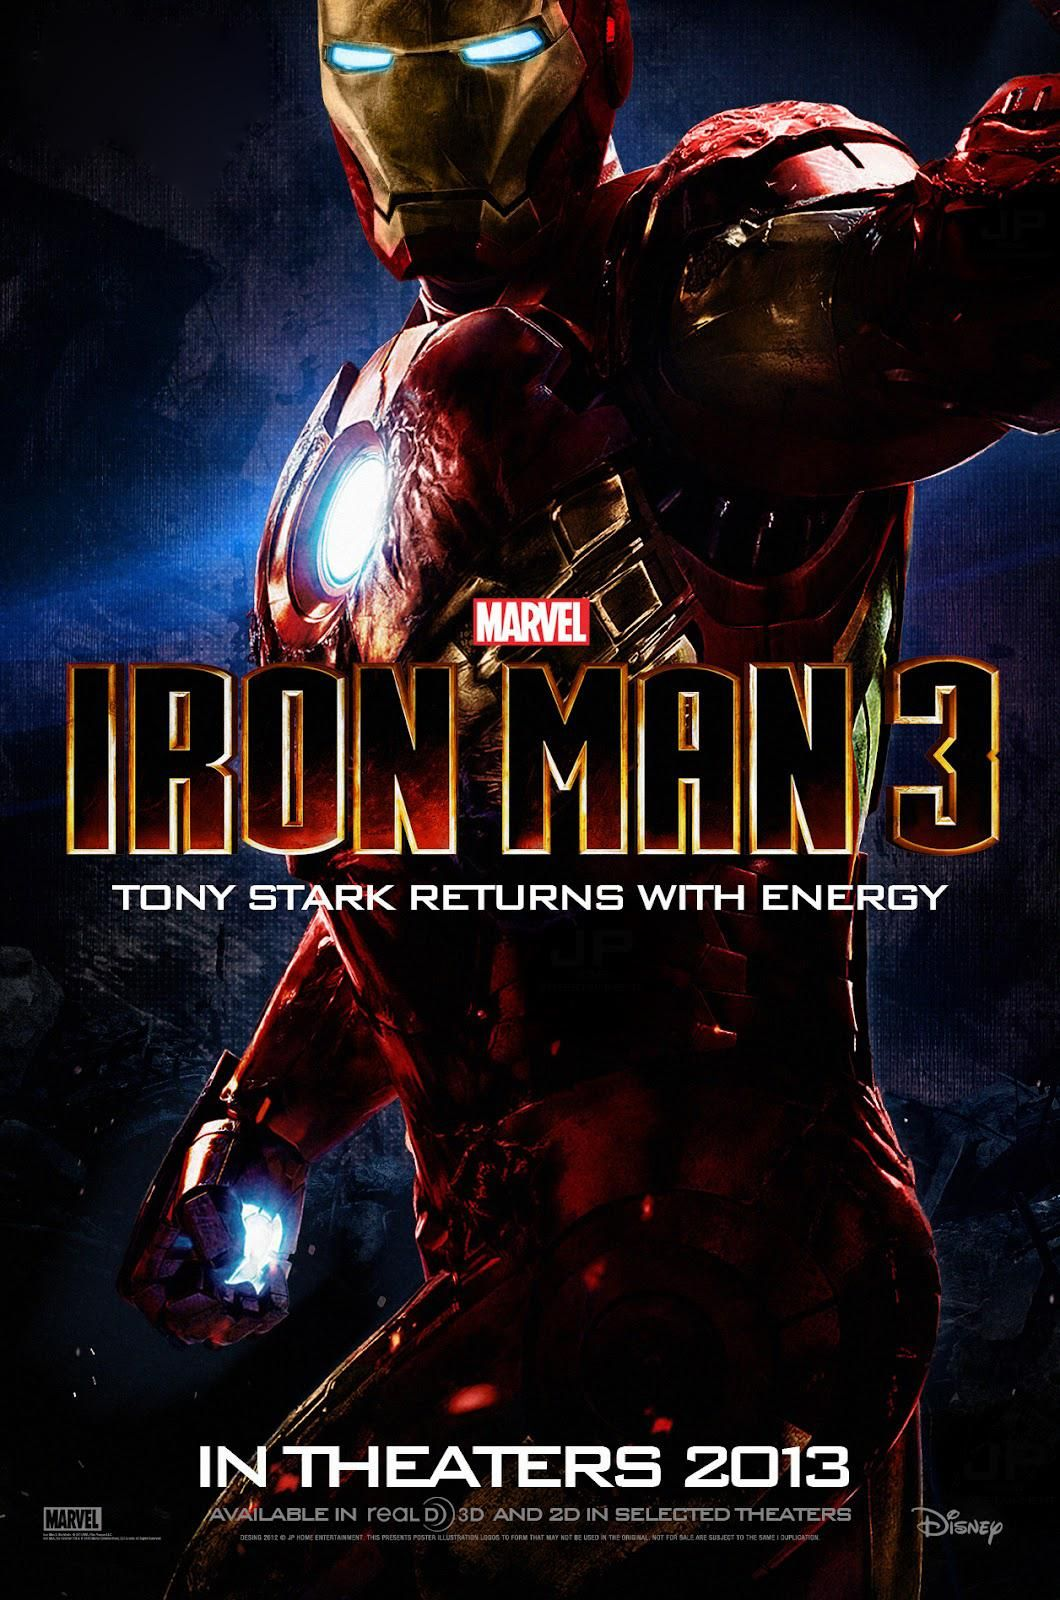 Saw This At The 9 Oclock Permere Last Night It Was Excellent Make Sure You Stay Till After The Credits Iron Man Photos Iron Man 3 Iron Man 3 Poster